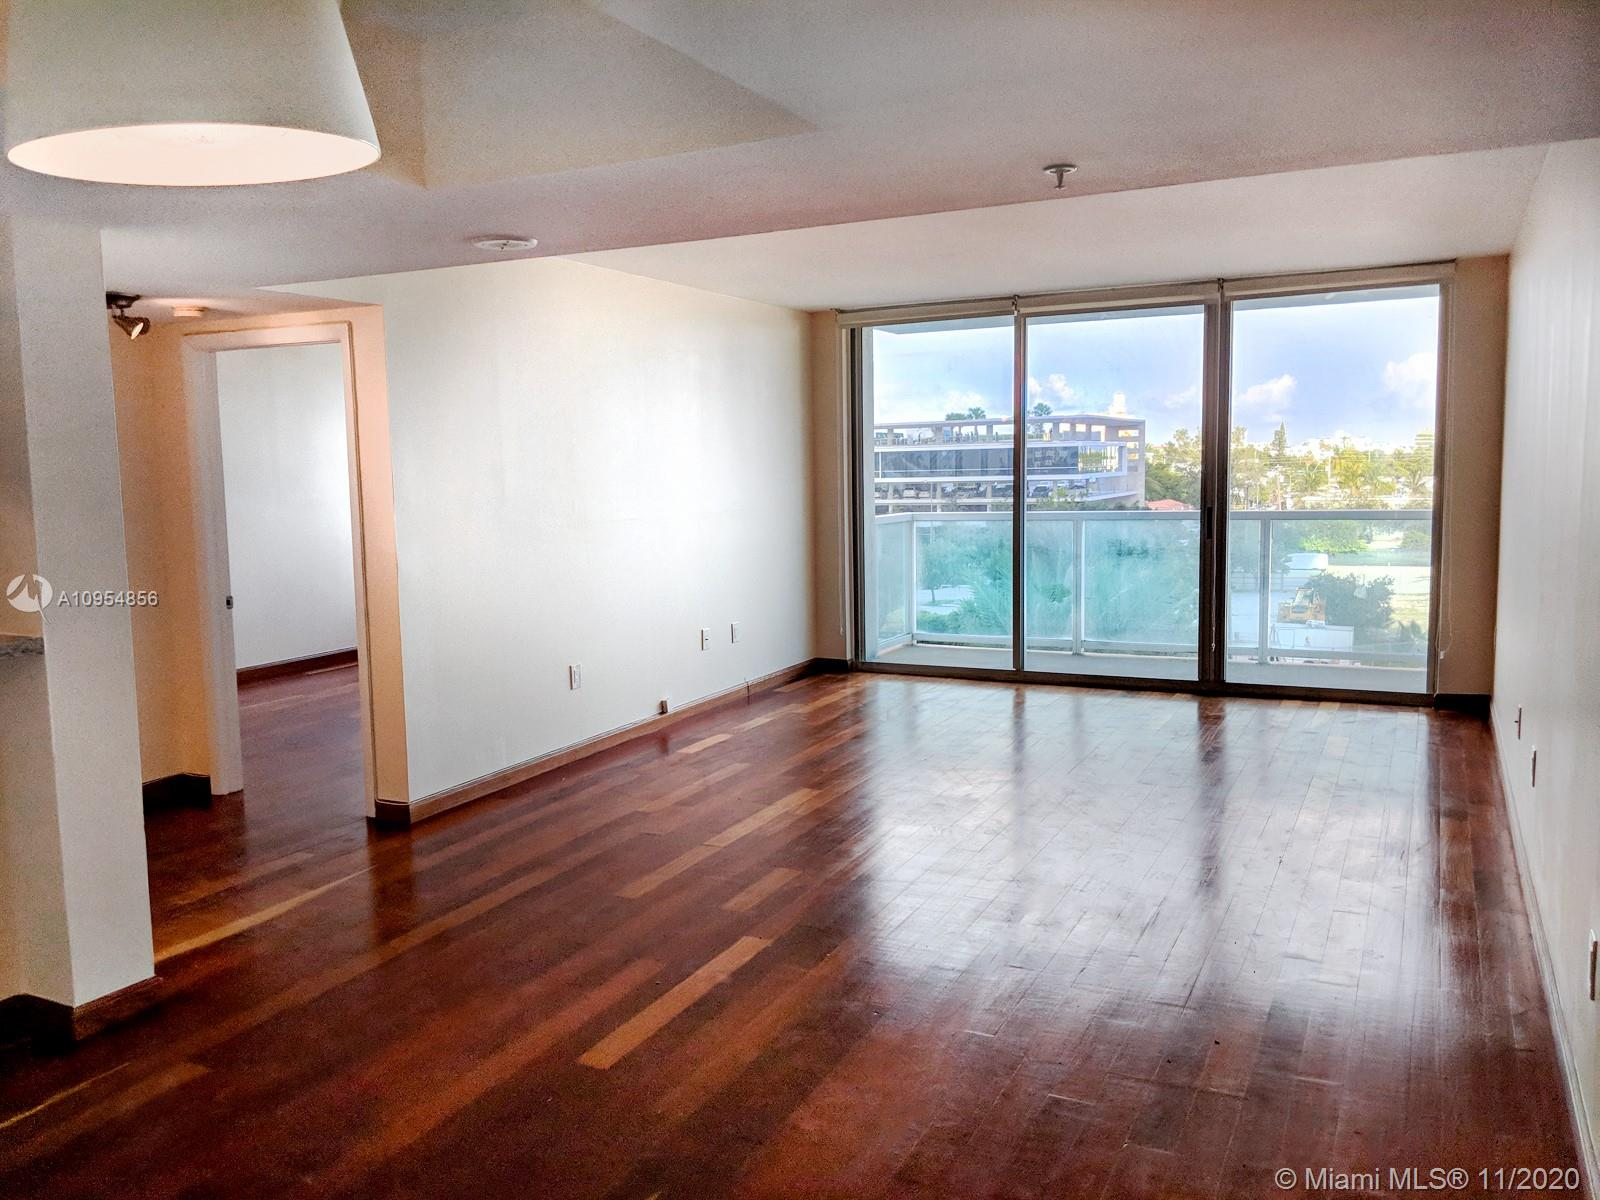 The Floridian #504 - 650 West Ave #504, Miami Beach, FL 33139